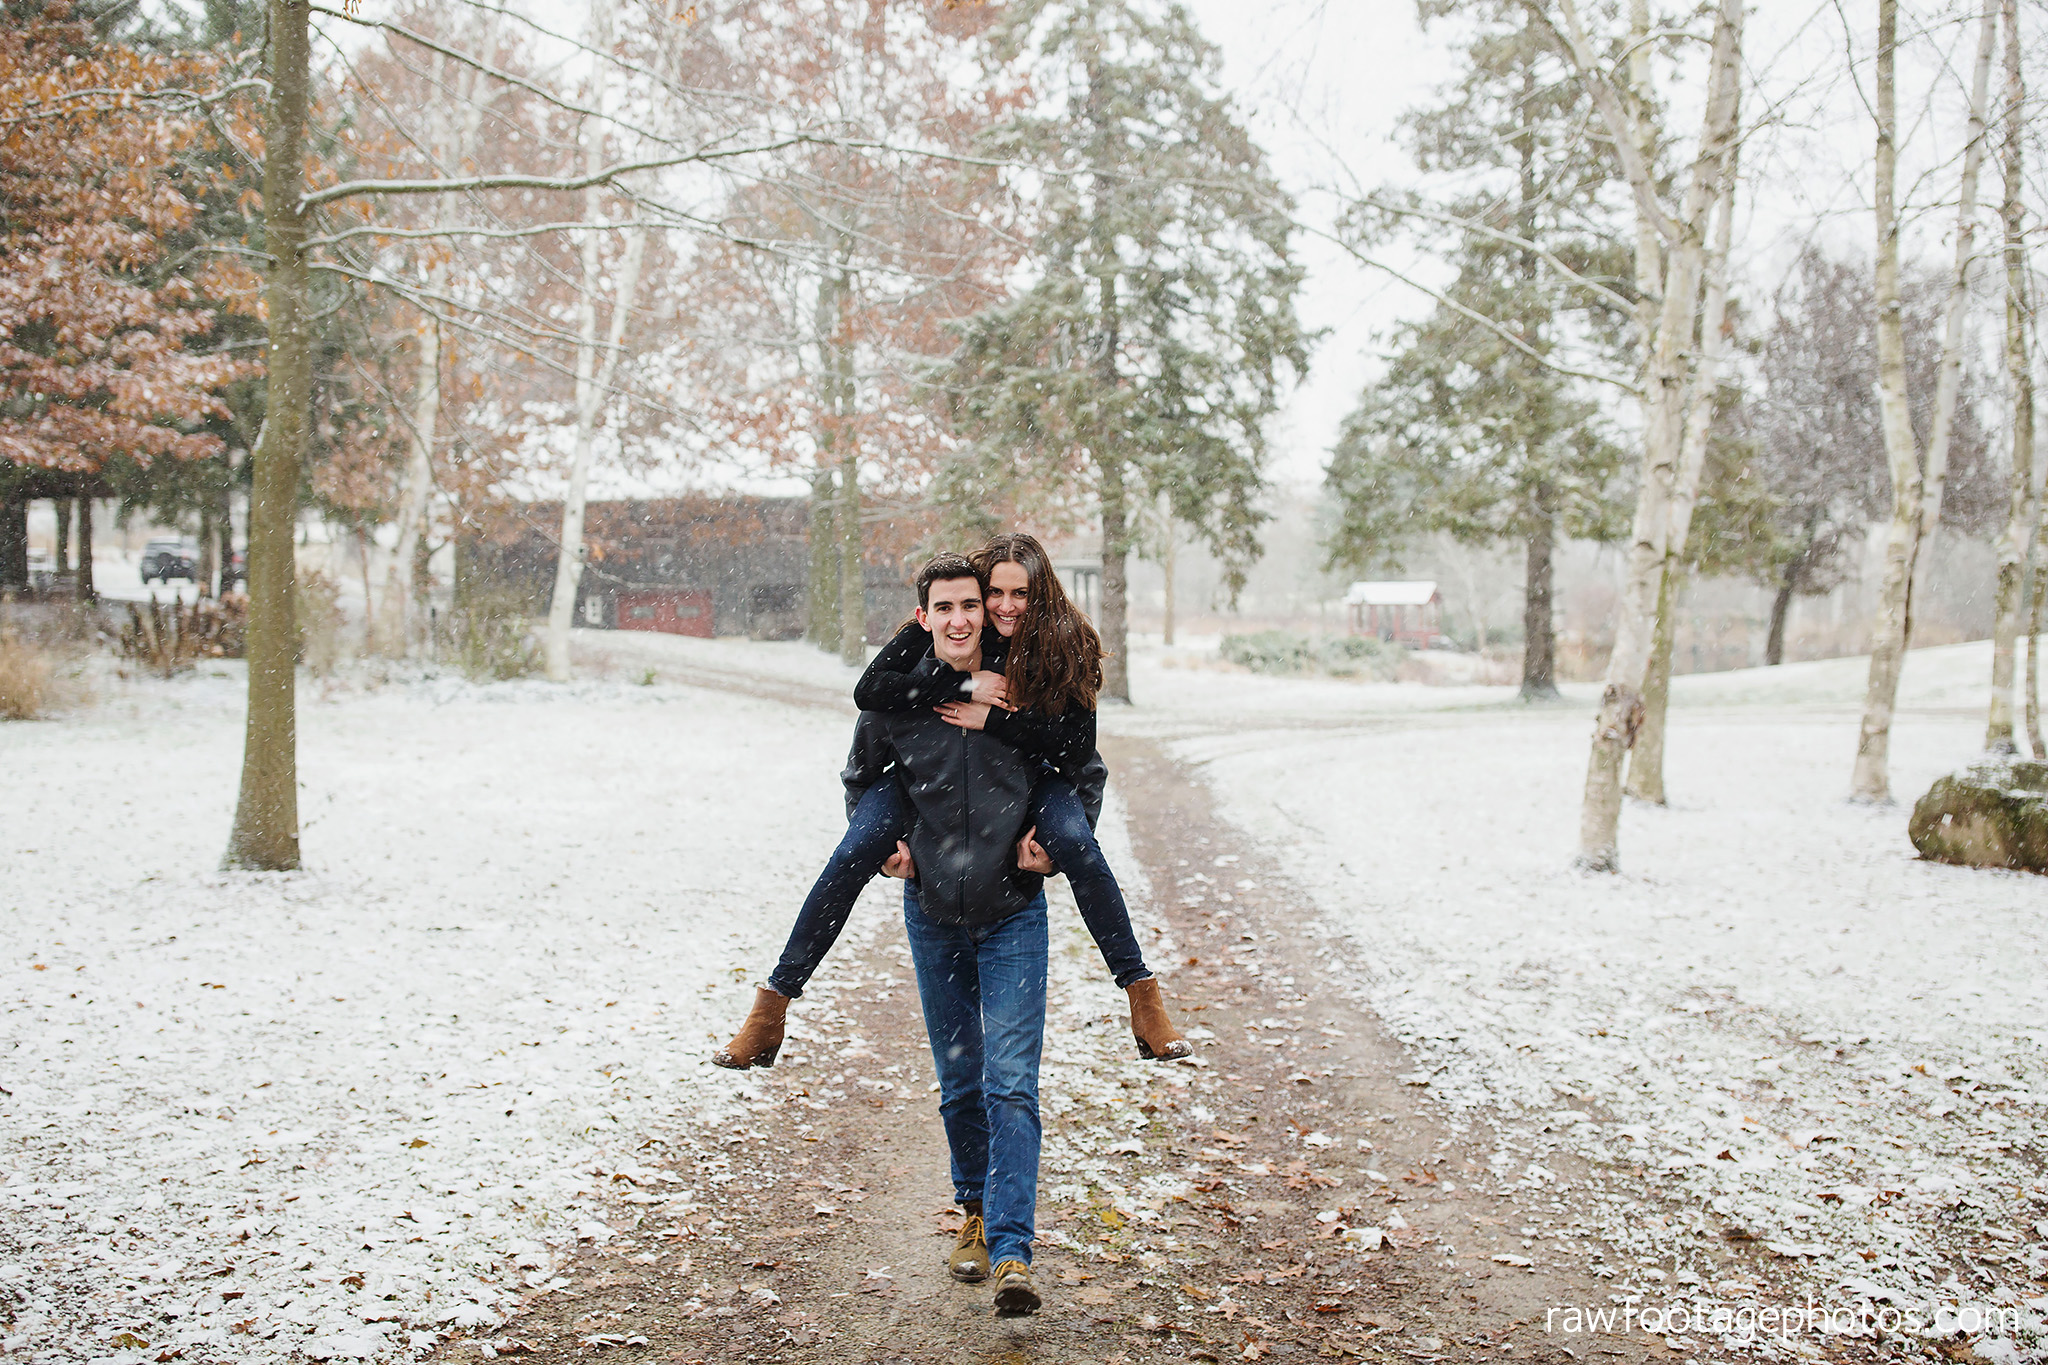 london_ontario_wedding_photographer-snowy_engagement_session-winter-barn-farm-snowflakes-blizzard-raw_footage_photography018.jpg